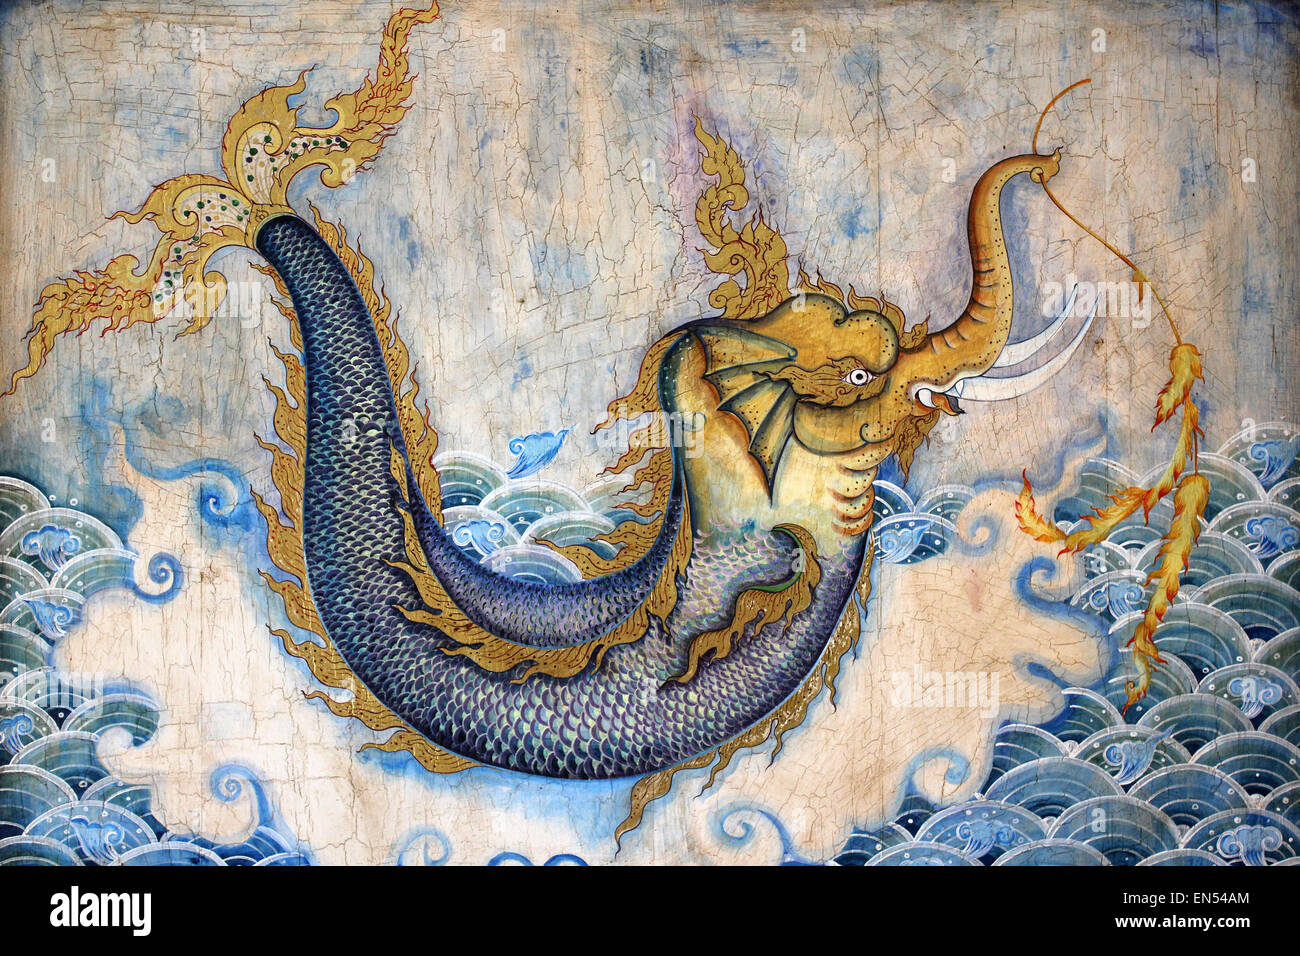 Waree Kunchorn A Thai Mythical creature With A head Of An Elephant And A Tail Of A Fish - Stock Image